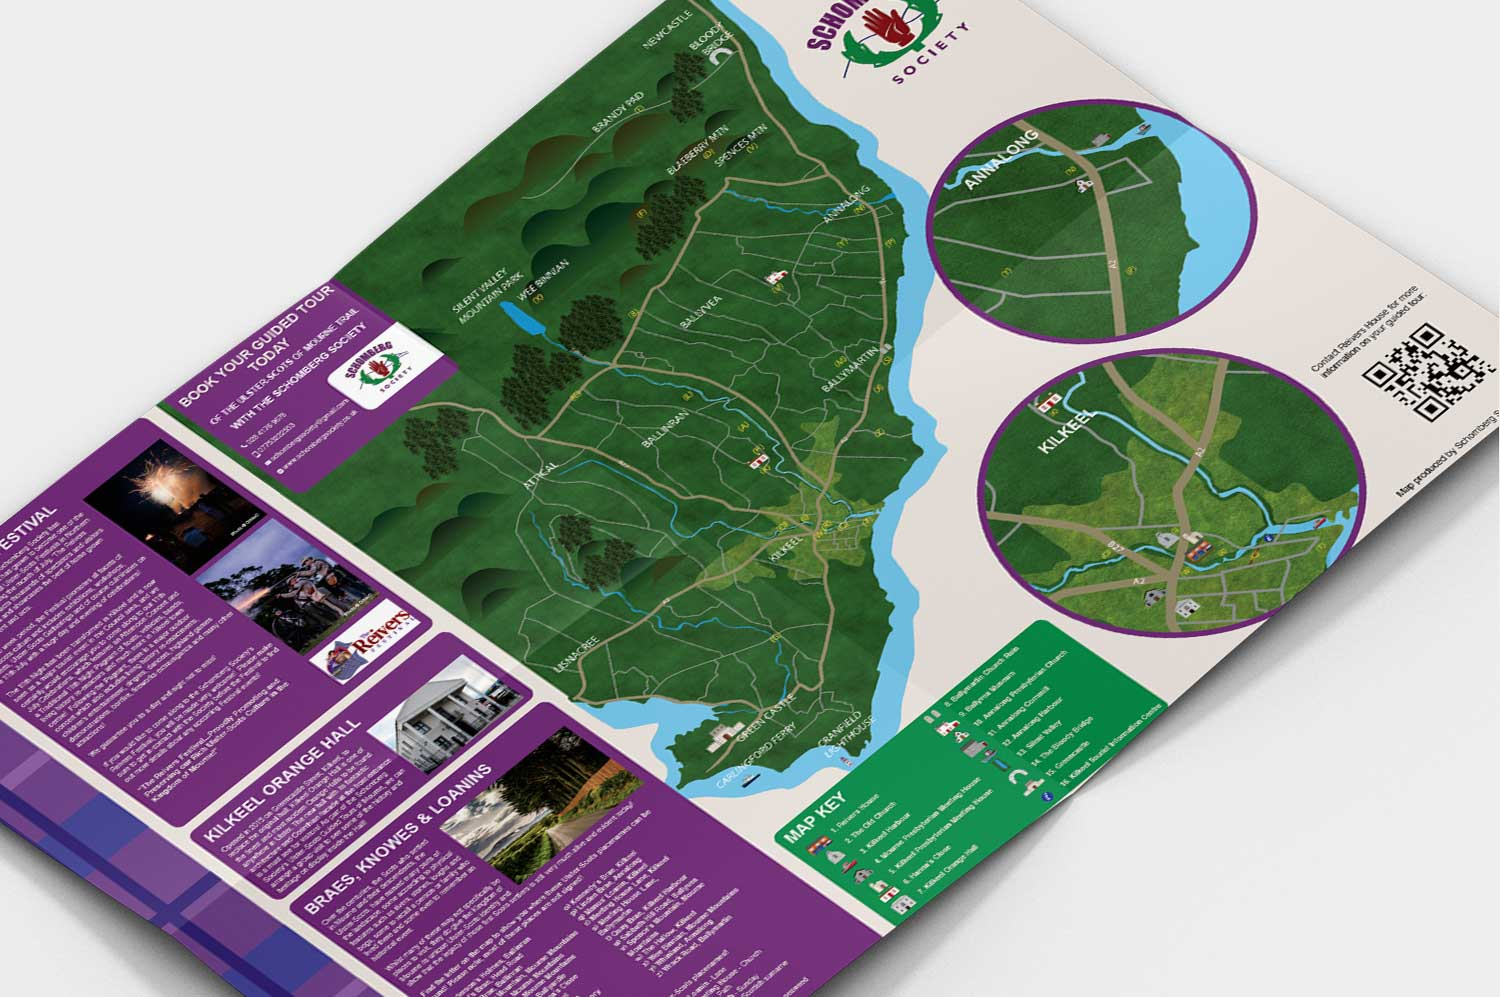 Schomberg trail Map and Design, Schomberg Society